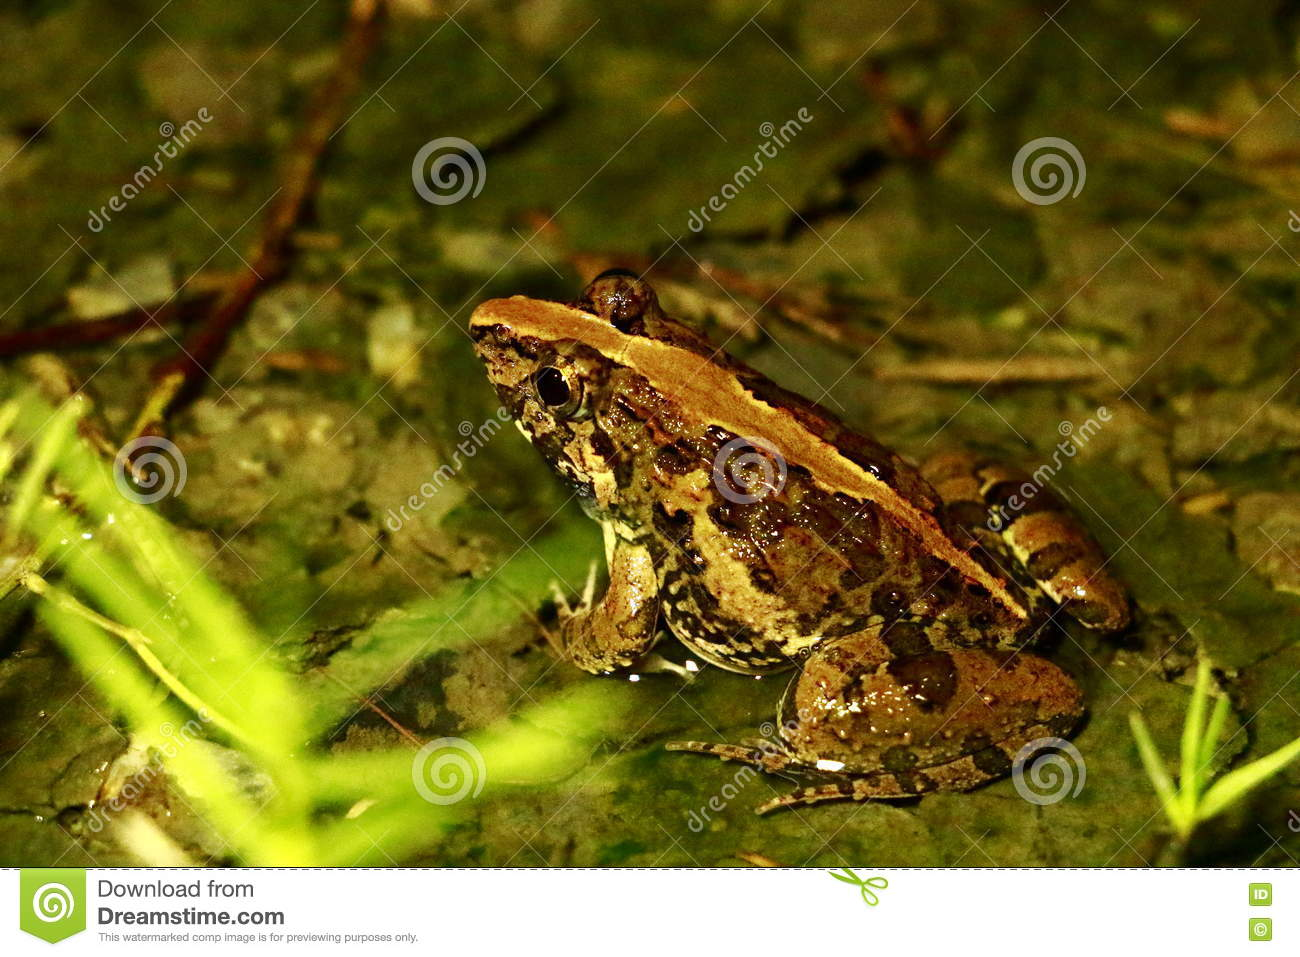 Download Anatomy Of Frogs, Animals, Amphibians. Stock Image - Image of black, frogs: 80332541